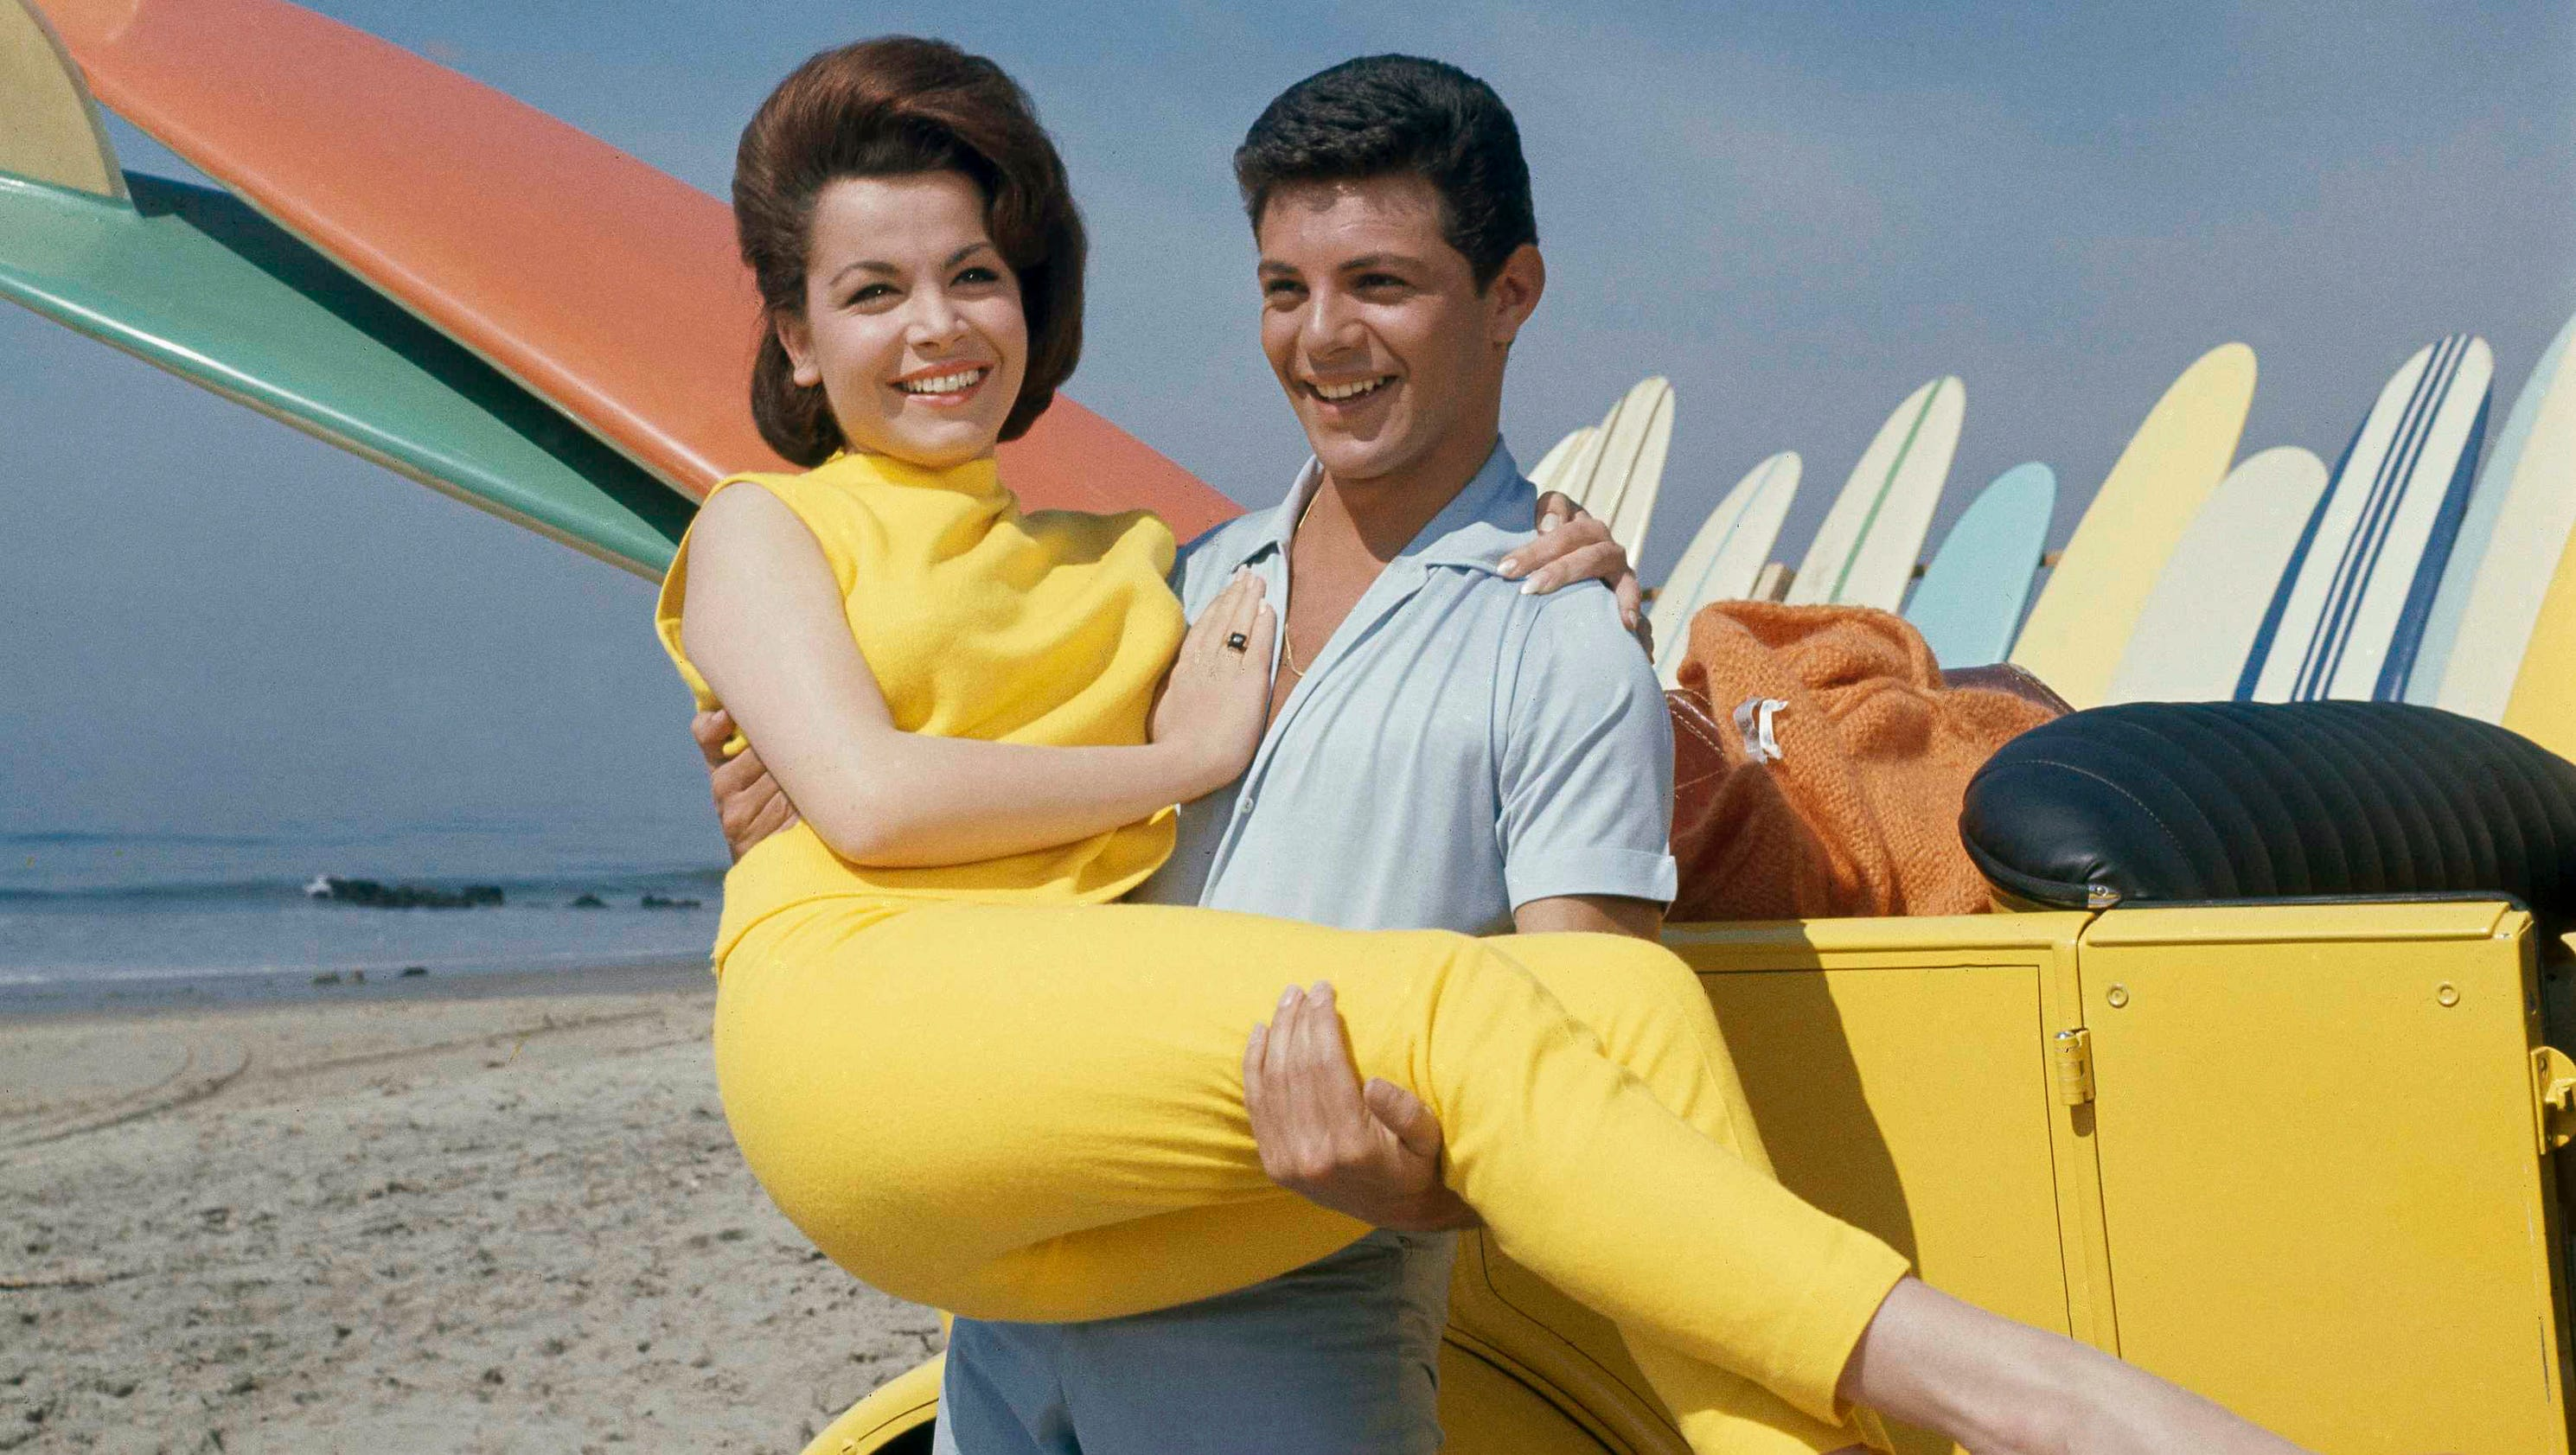 Frankie Avalon Pics within a look back: frankie avalon